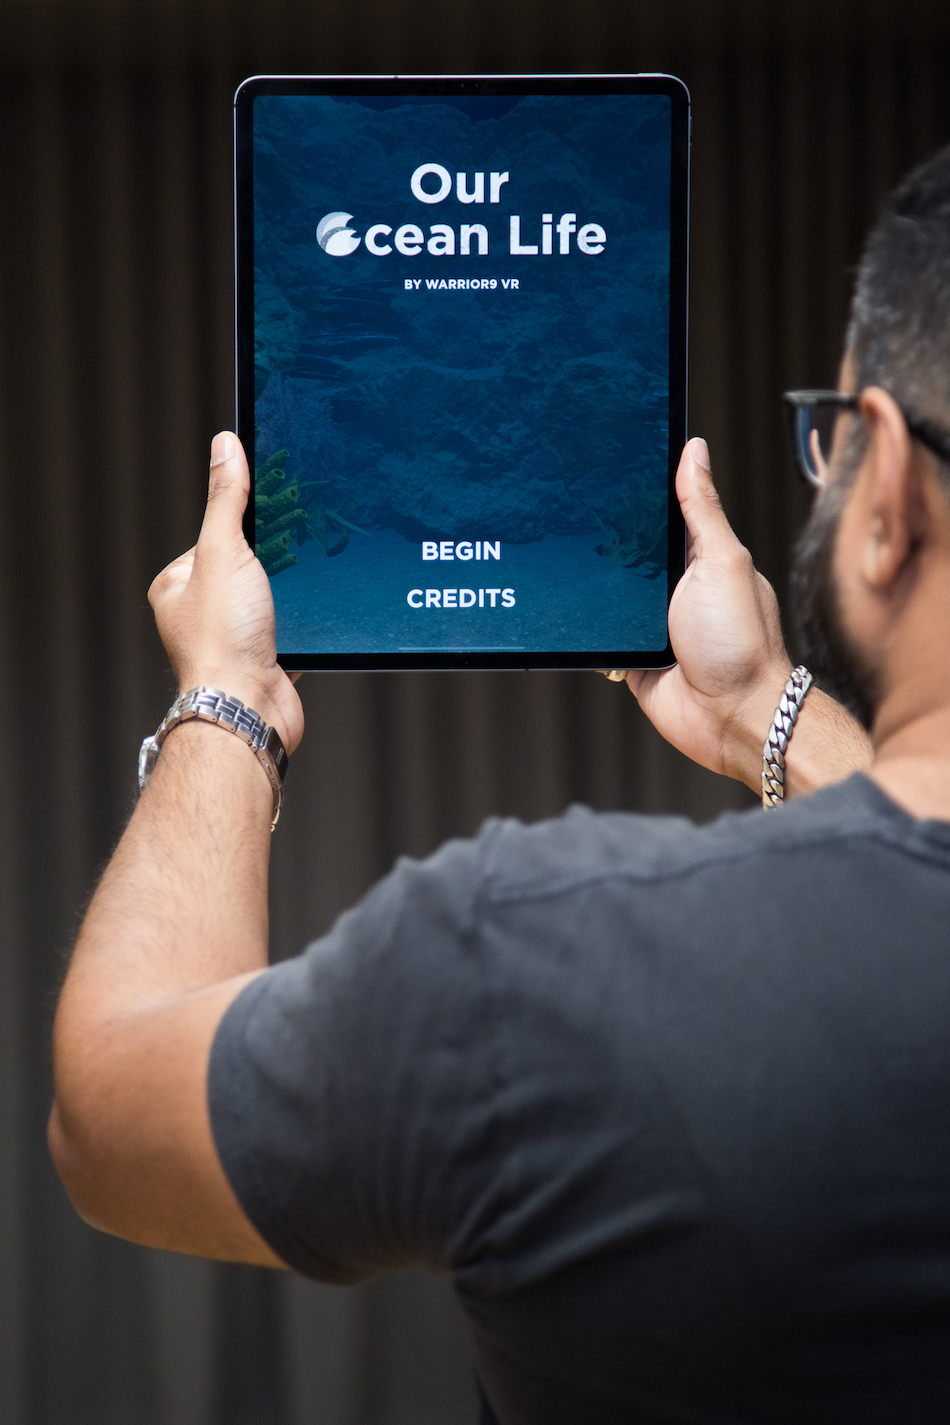 Immersive media company Warrior9 VR demonstrates their augmented reality experience Our Ocean Life on iPad Pro. (2) [Image courtesy of The MeshMinds Foundation].jpg